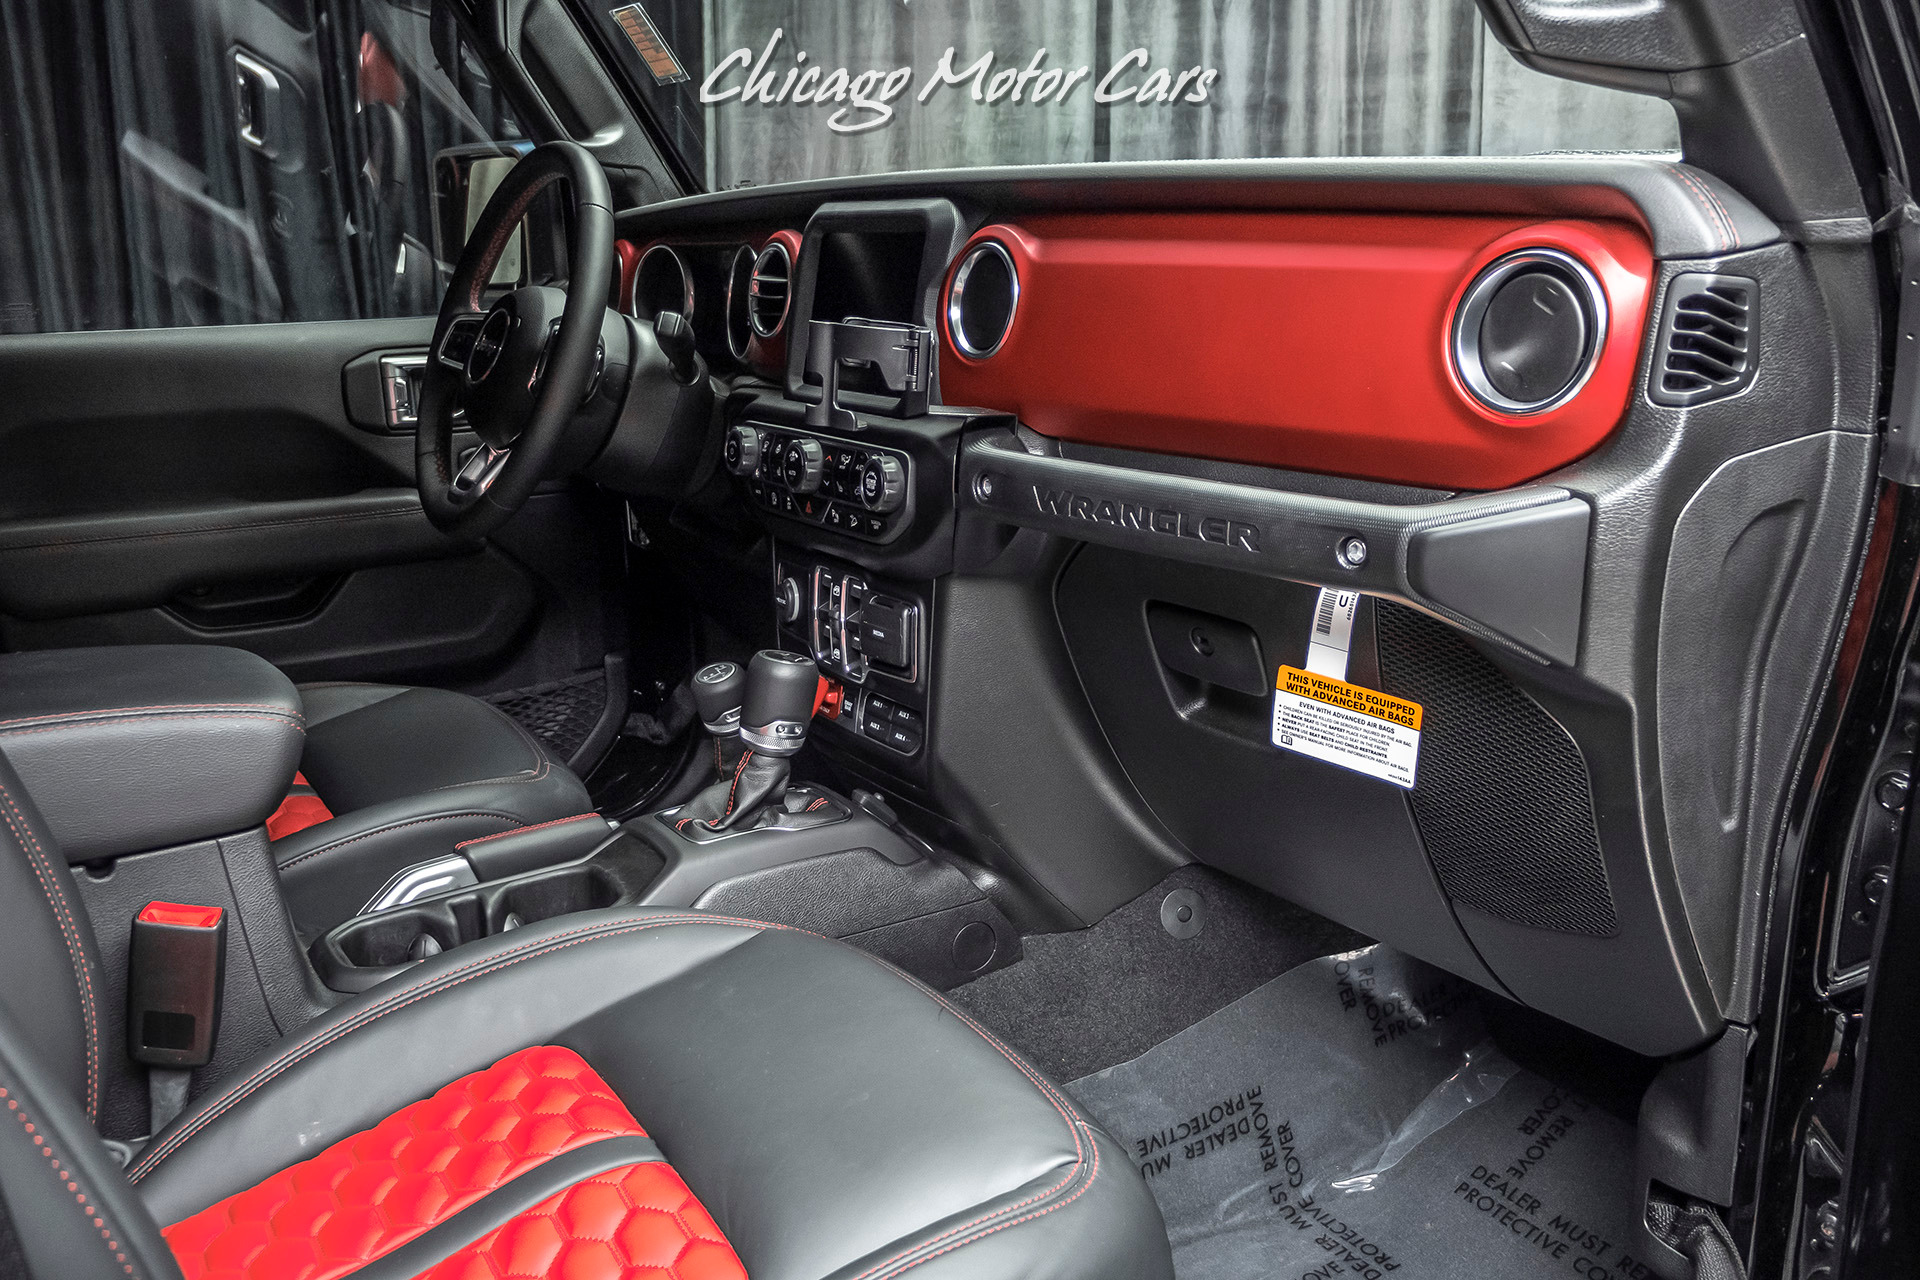 Used-2020-Jeep-Wrangler-Unlimited-Rubicon-Supercharged-Only-9618-Miles-Over-40k-In-Upgrades